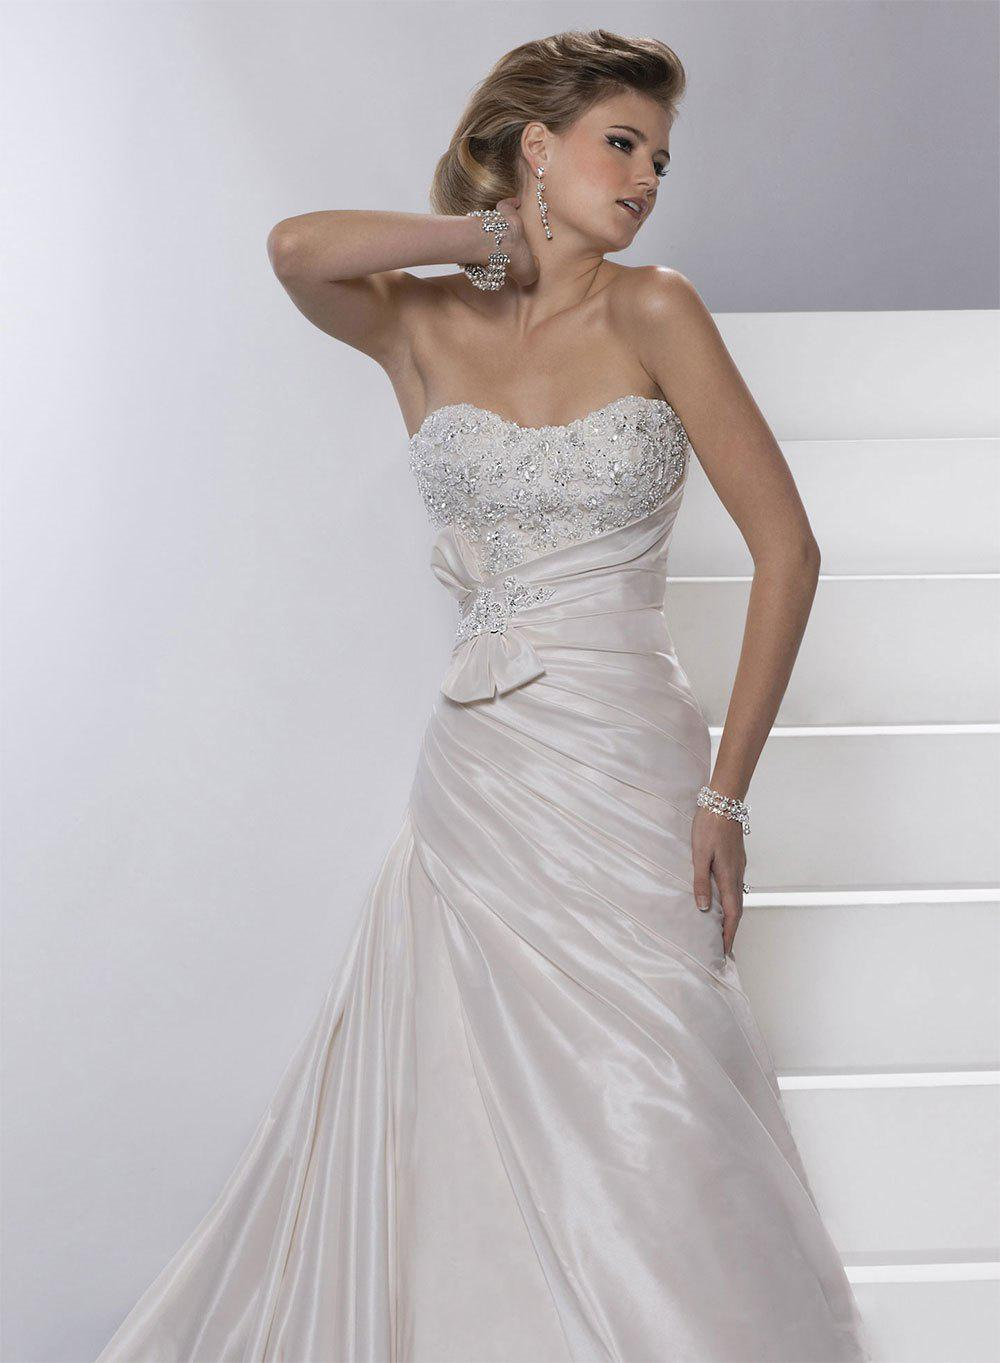 Maggie Sottero - Geena, LightGold/Ivory:40